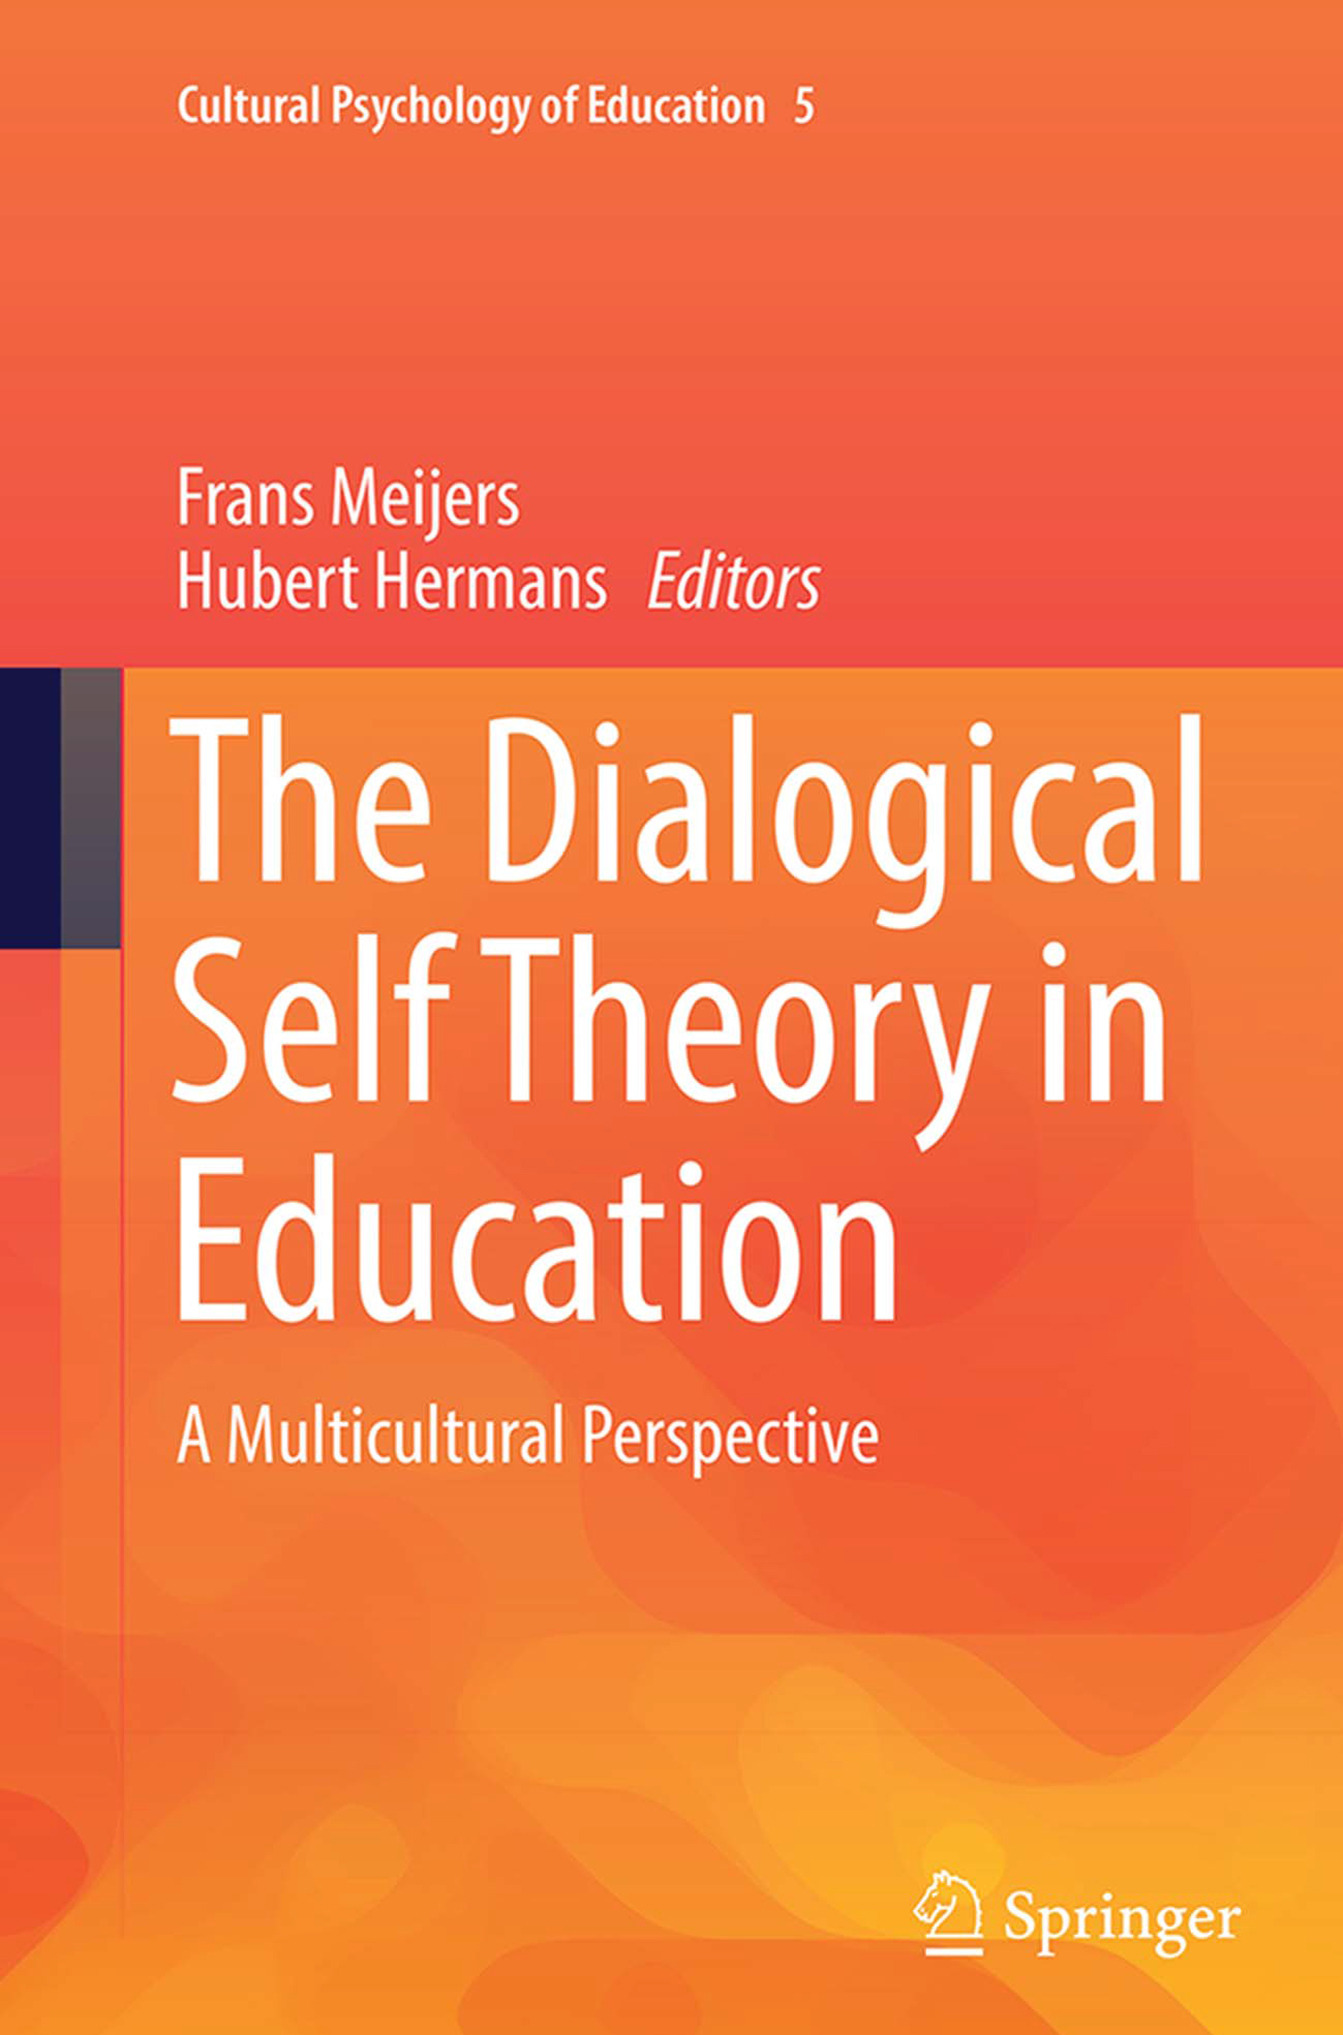 Hermans, Hubert - The Dialogical Self Theory in Education, ebook